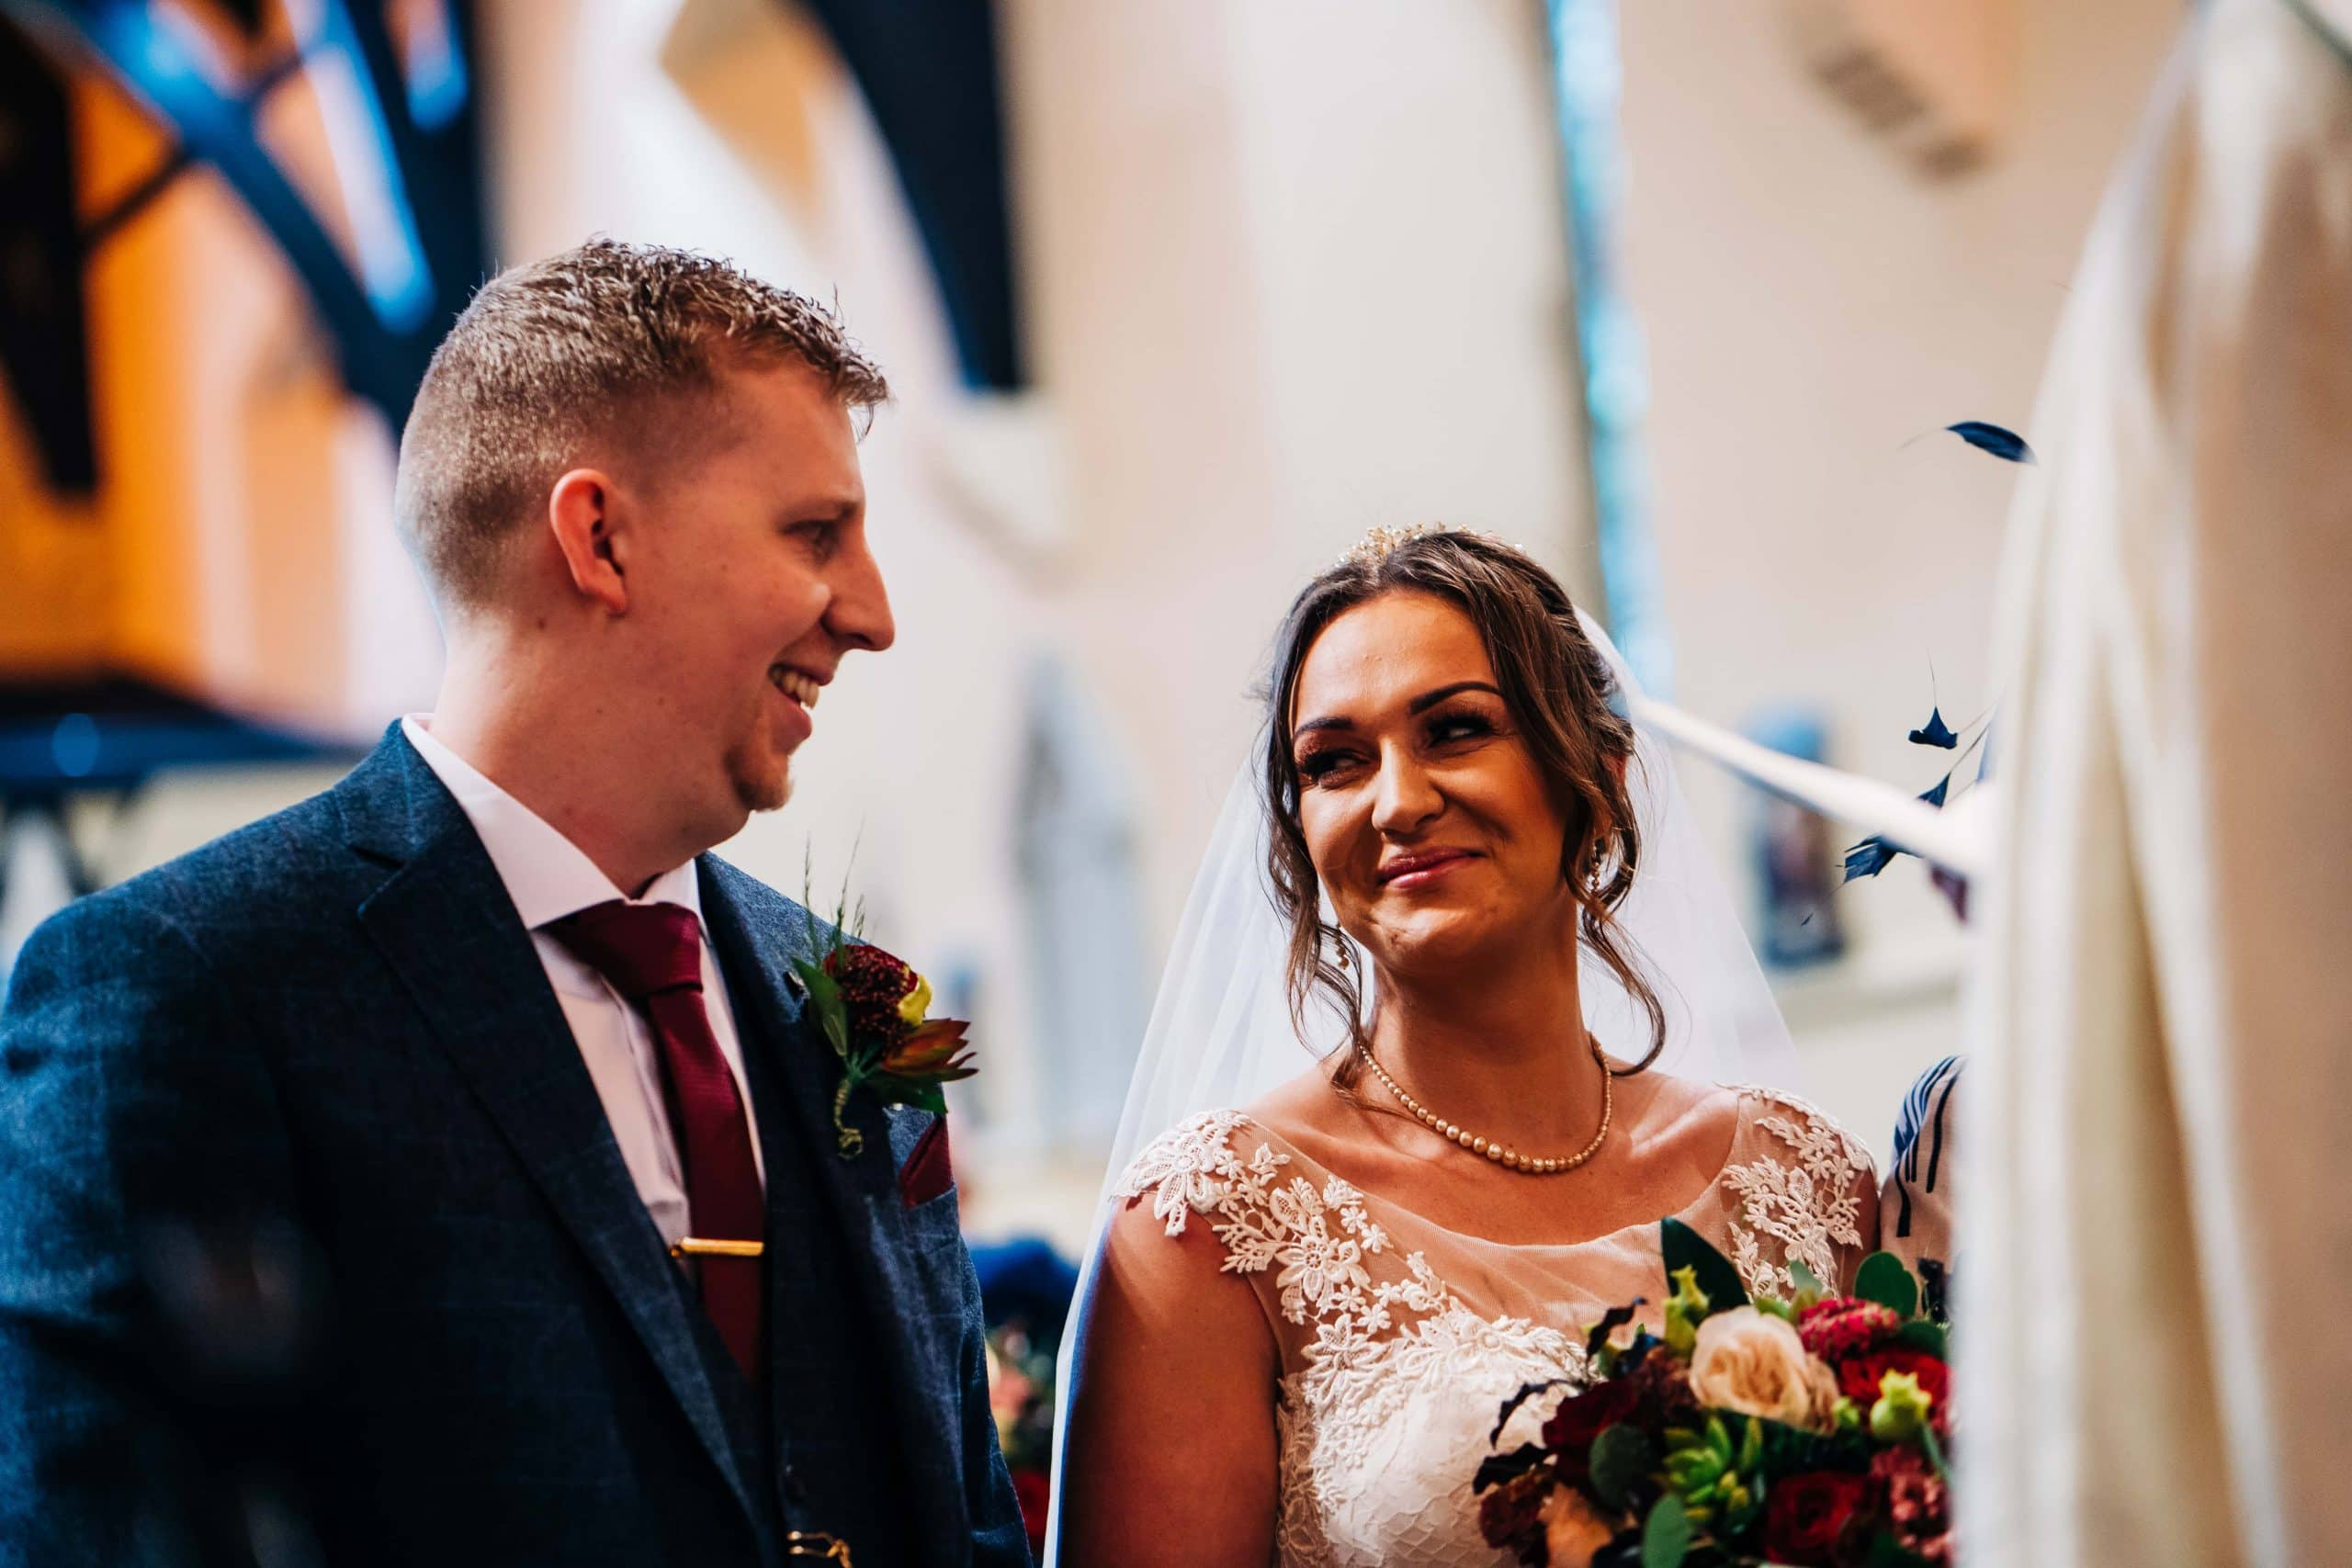 bride and groom, church wedding, derbyshire wedding photographer